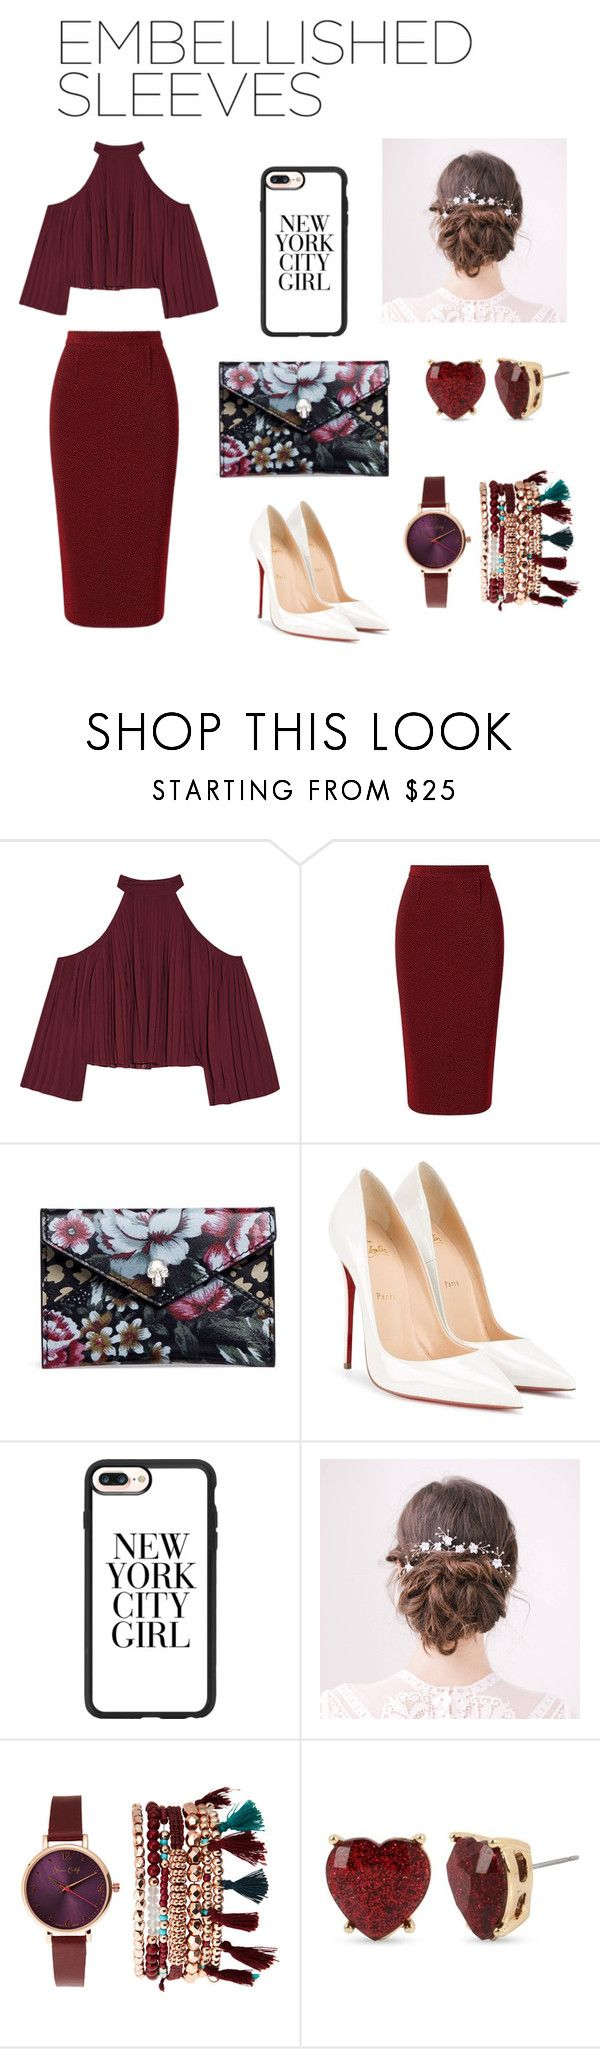 """""""embellished love"""" by sophia-degrandis ❤ liked on Polyvore featuring W118 by Walter Baker, Roland Mouret, Alexander McQueen, Christian Louboutin, Casetify, Jessica Carlyle and Betsey Johnson"""